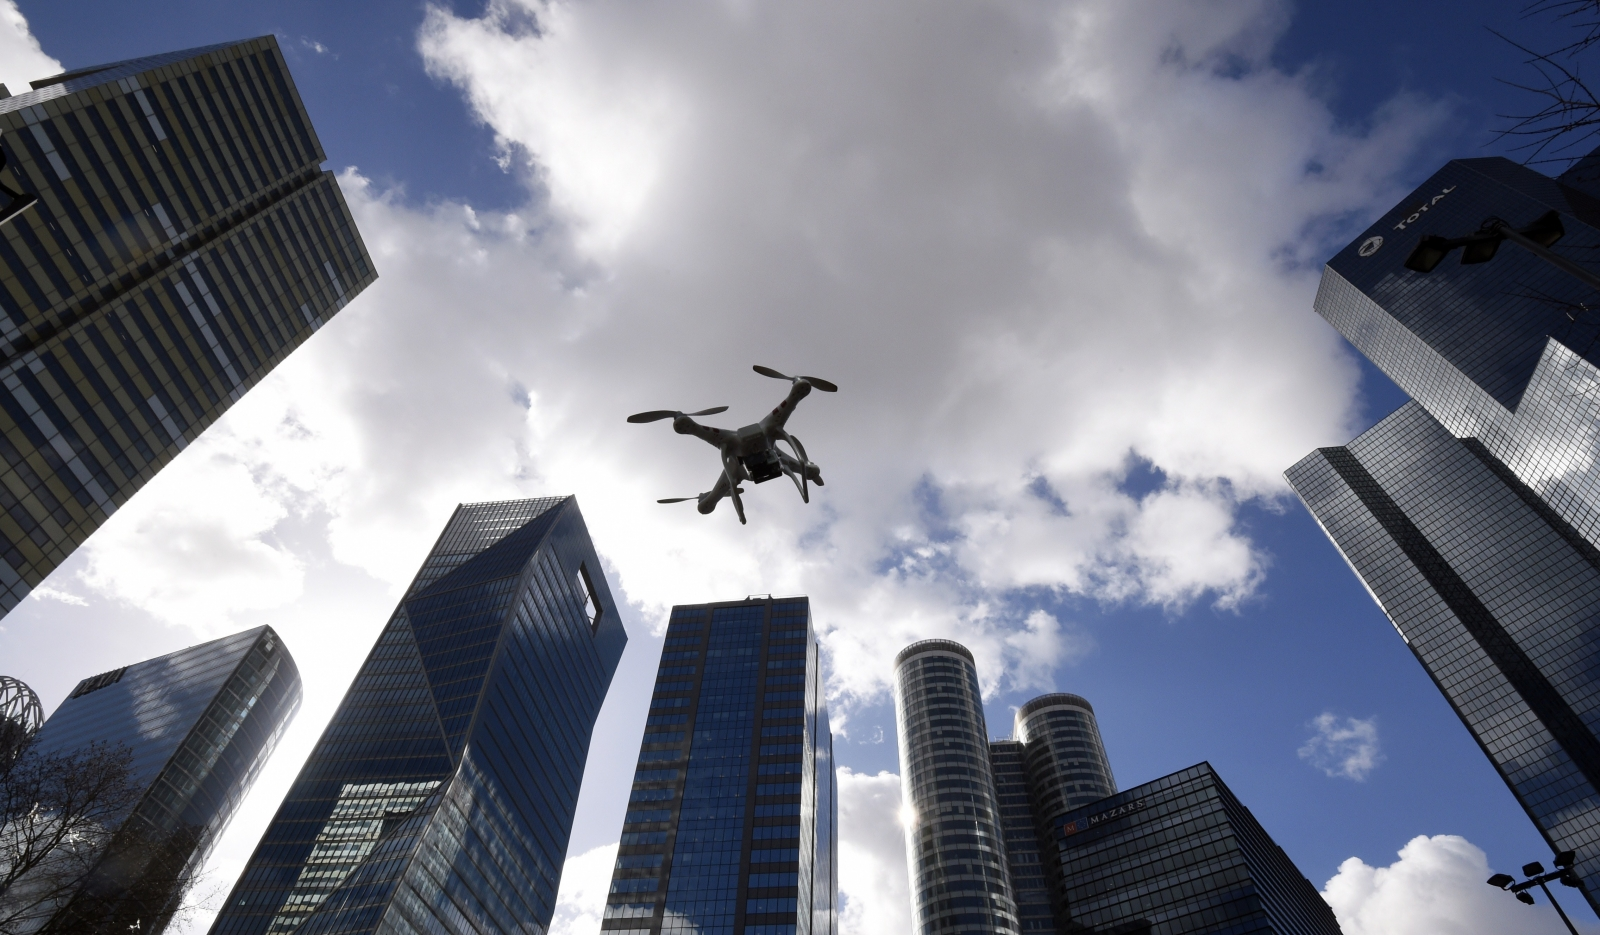 Uk London Airport Police To Use Surveillance Drones For